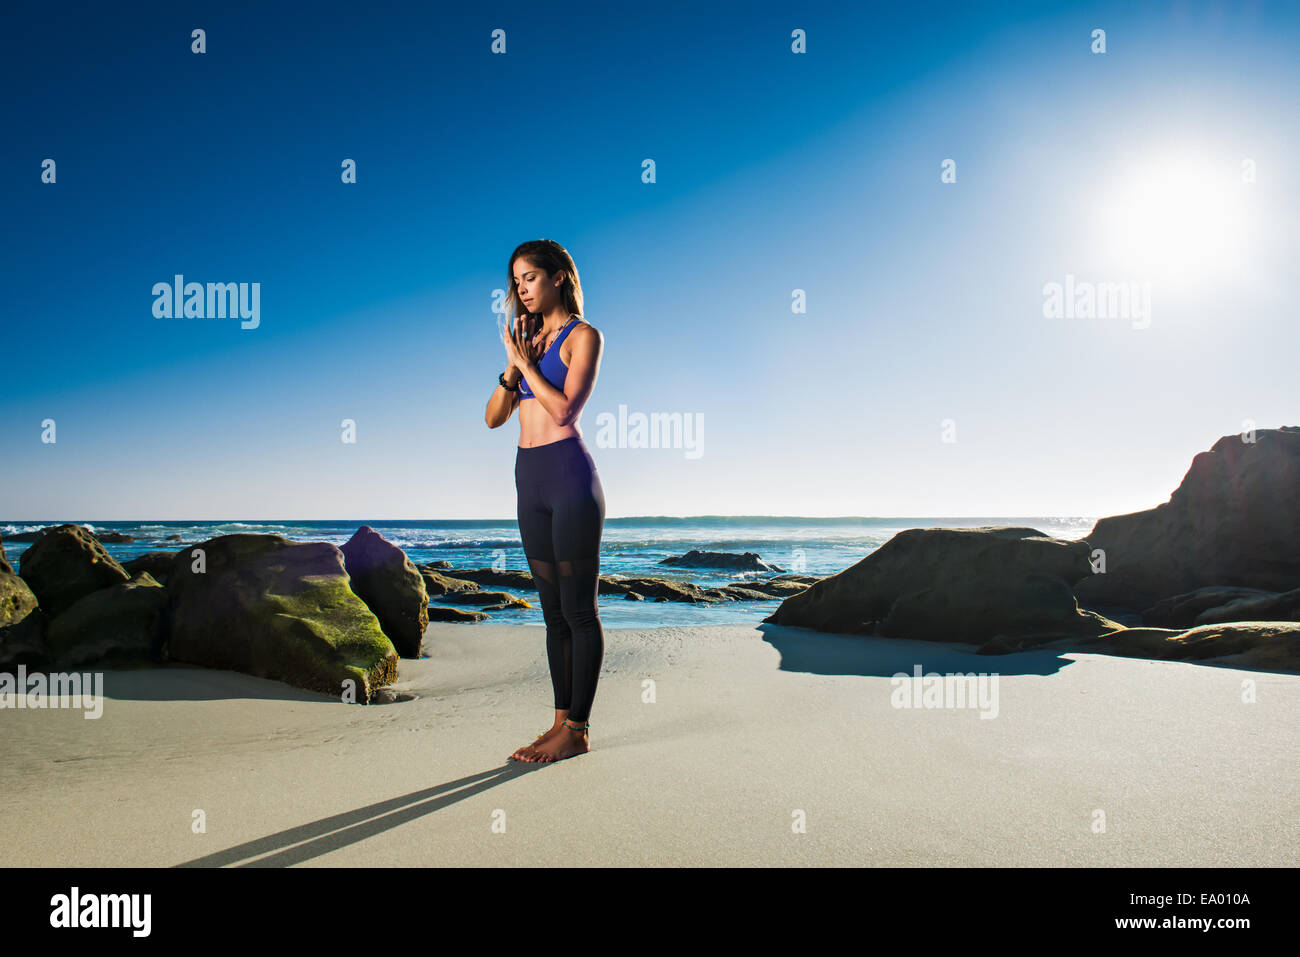 Standing at attention - samasthiti, Windansea beach, La Jolla, California - Stock Image